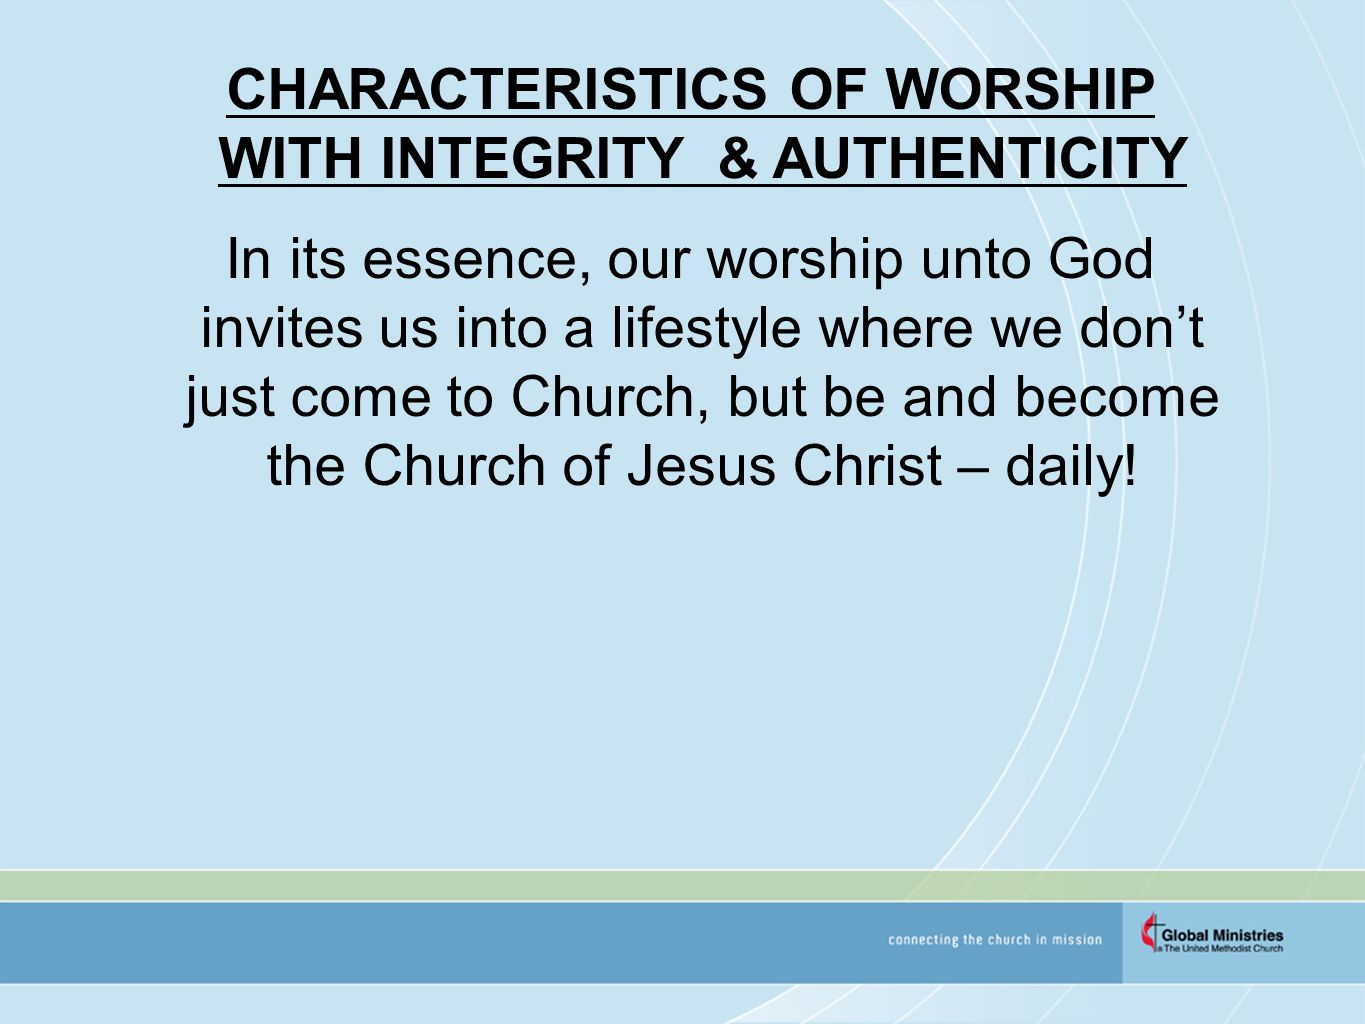 CHARACTERISTICS OF WORSHIP WITH INTEGRITY & AUTHENTICITY In its essence, our worship unto God invites us into a lifestyle where we don't just come to Church, but be and become the Church of Jesus Christ – daily!